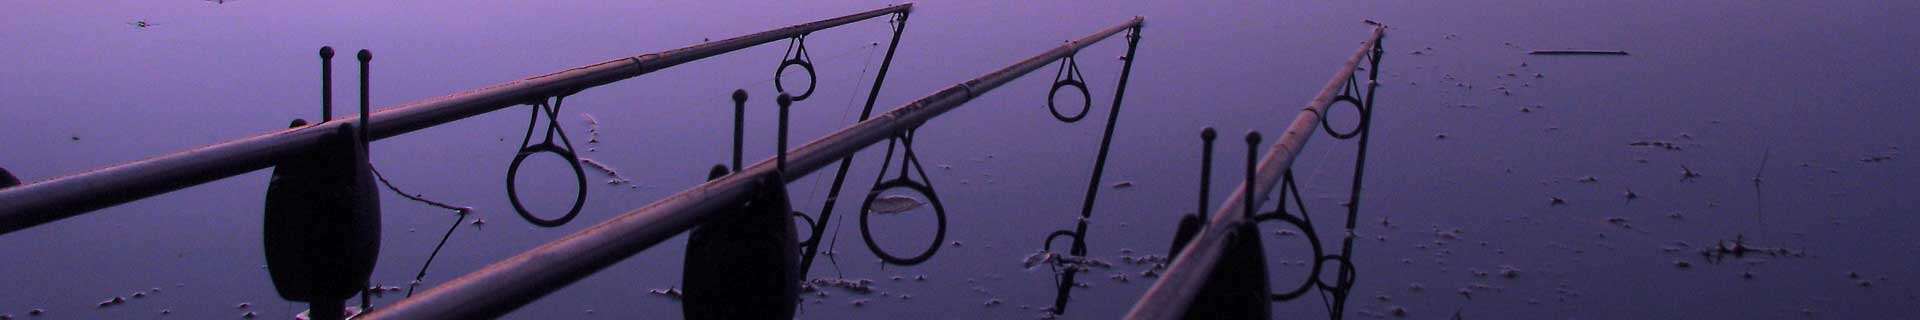 Angling rods